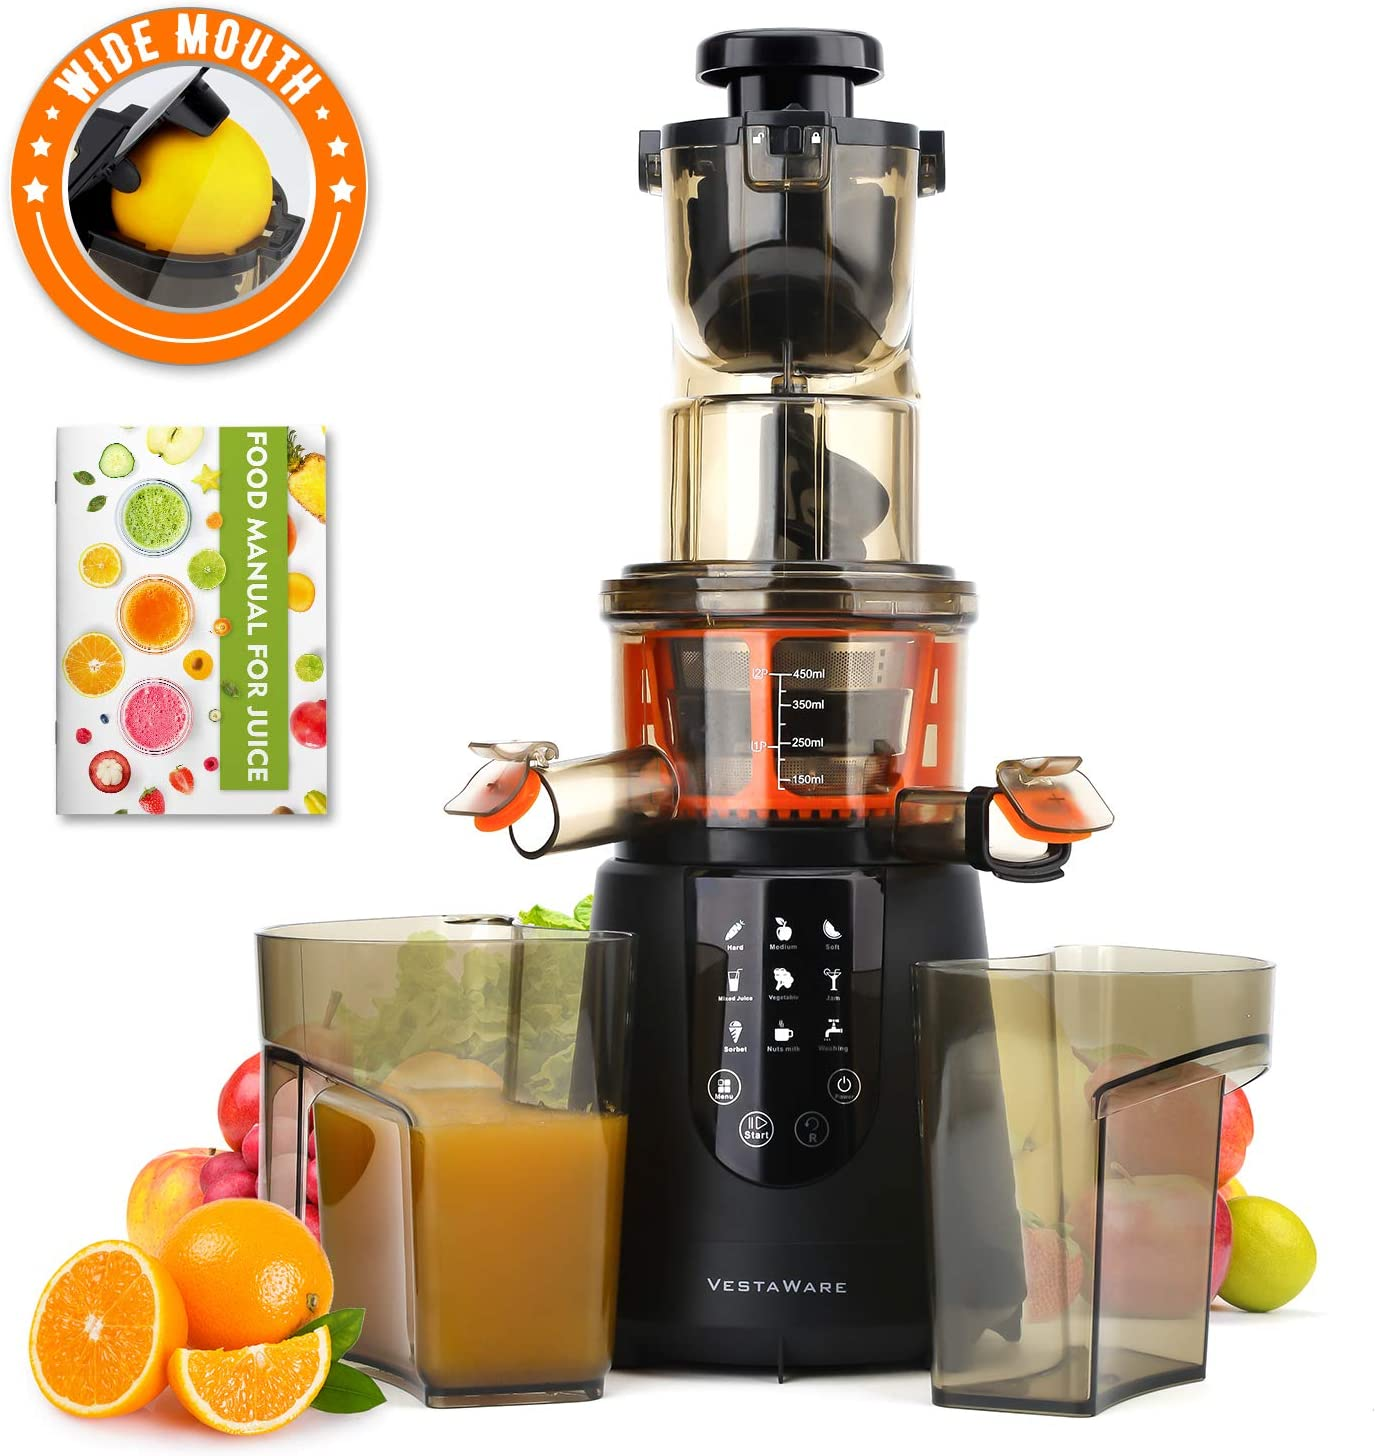 Masticating Juicer, Vestaware Slow Juicer Machines Large Chute Cold Press Juicer with Quiet Motor & Reverse Function, Easy Clean BPA Free Juice